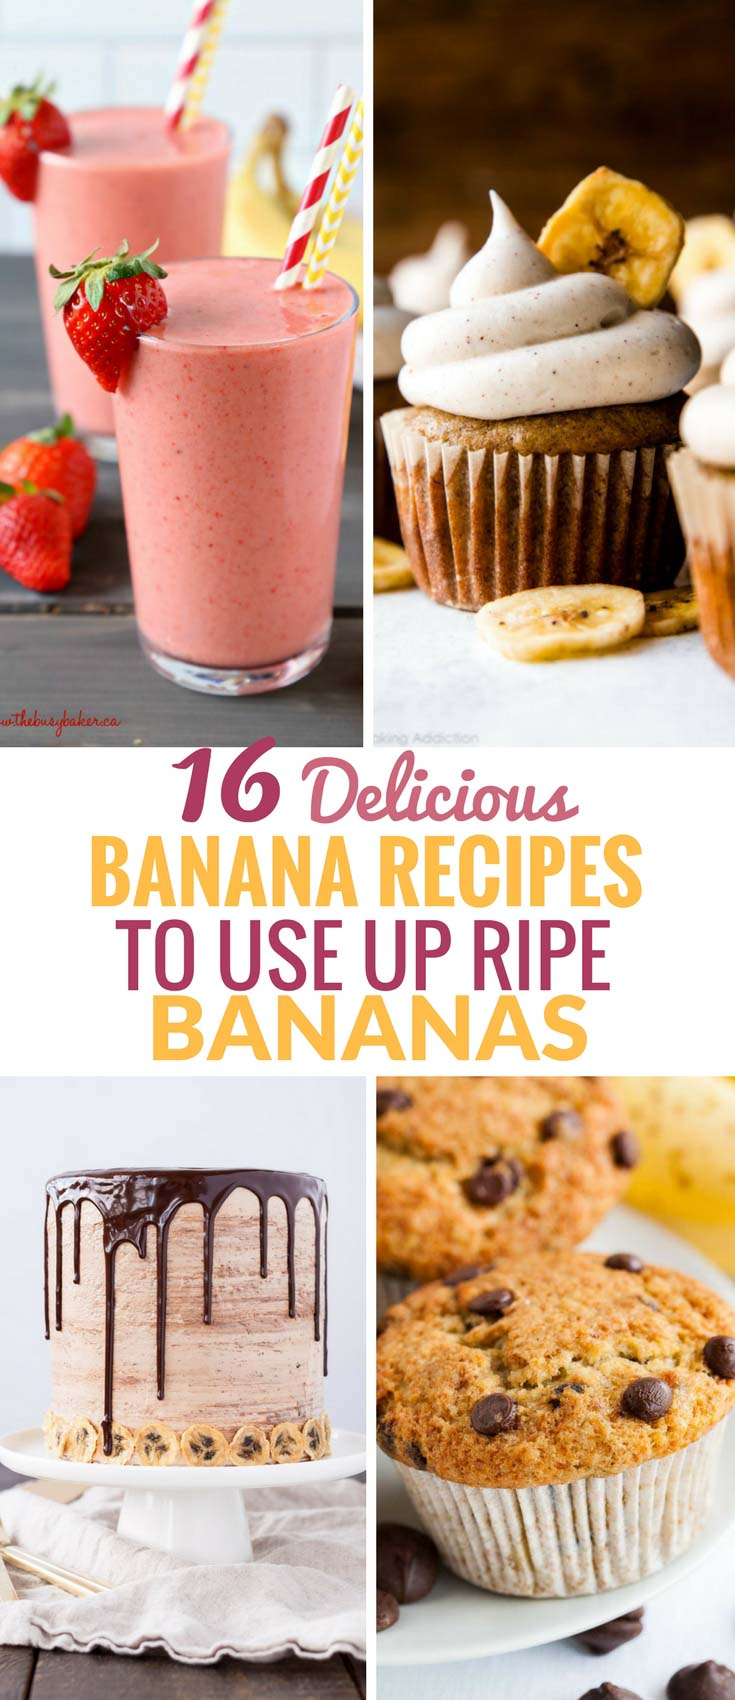 Ripe Bananas are perfect for baking and making smoothies! Looking for a recipe for ripe bananas other than banana bread? Check out these easy overripe banana recipes that are absolutely delicious. From healthy treats to stunning cakes, muffins and easy baking ideas, there is something for every occasion! #RipeBananaRecipes #Bananas #OverripeBanana